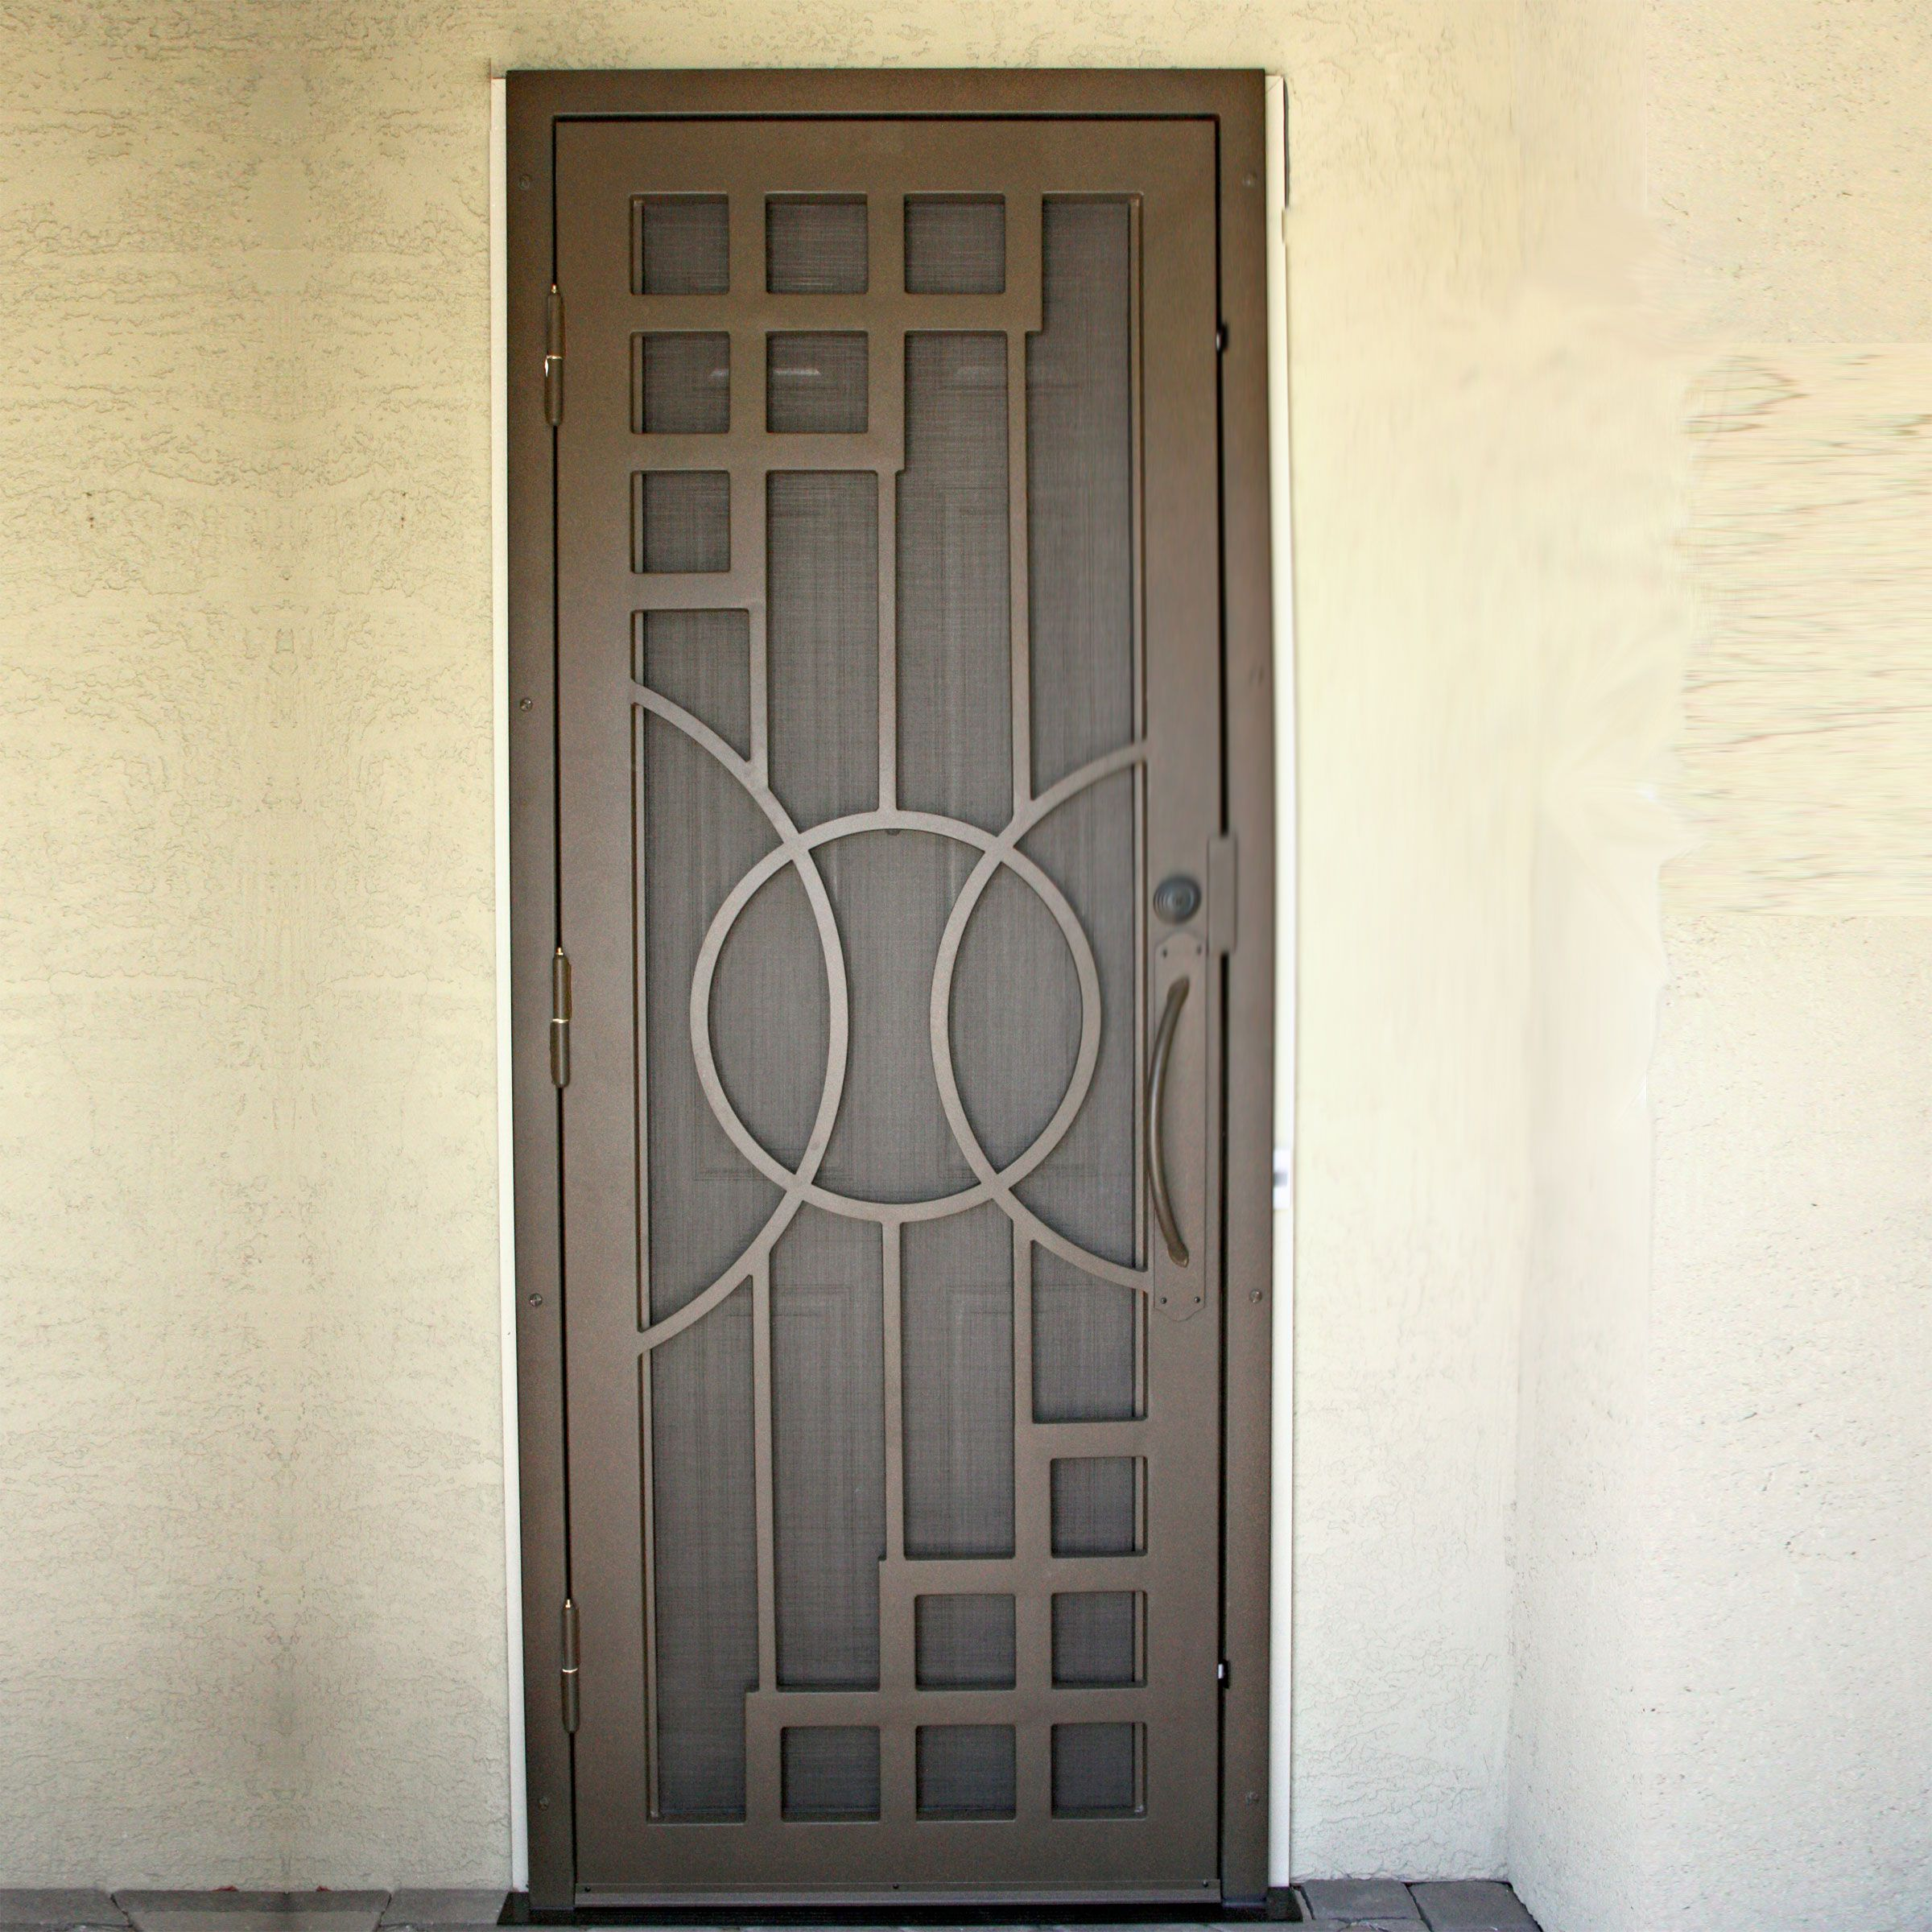 Nouveau First Impression Security Doors With Images Security Screen Door Metal Screen Doors Door Gate Design